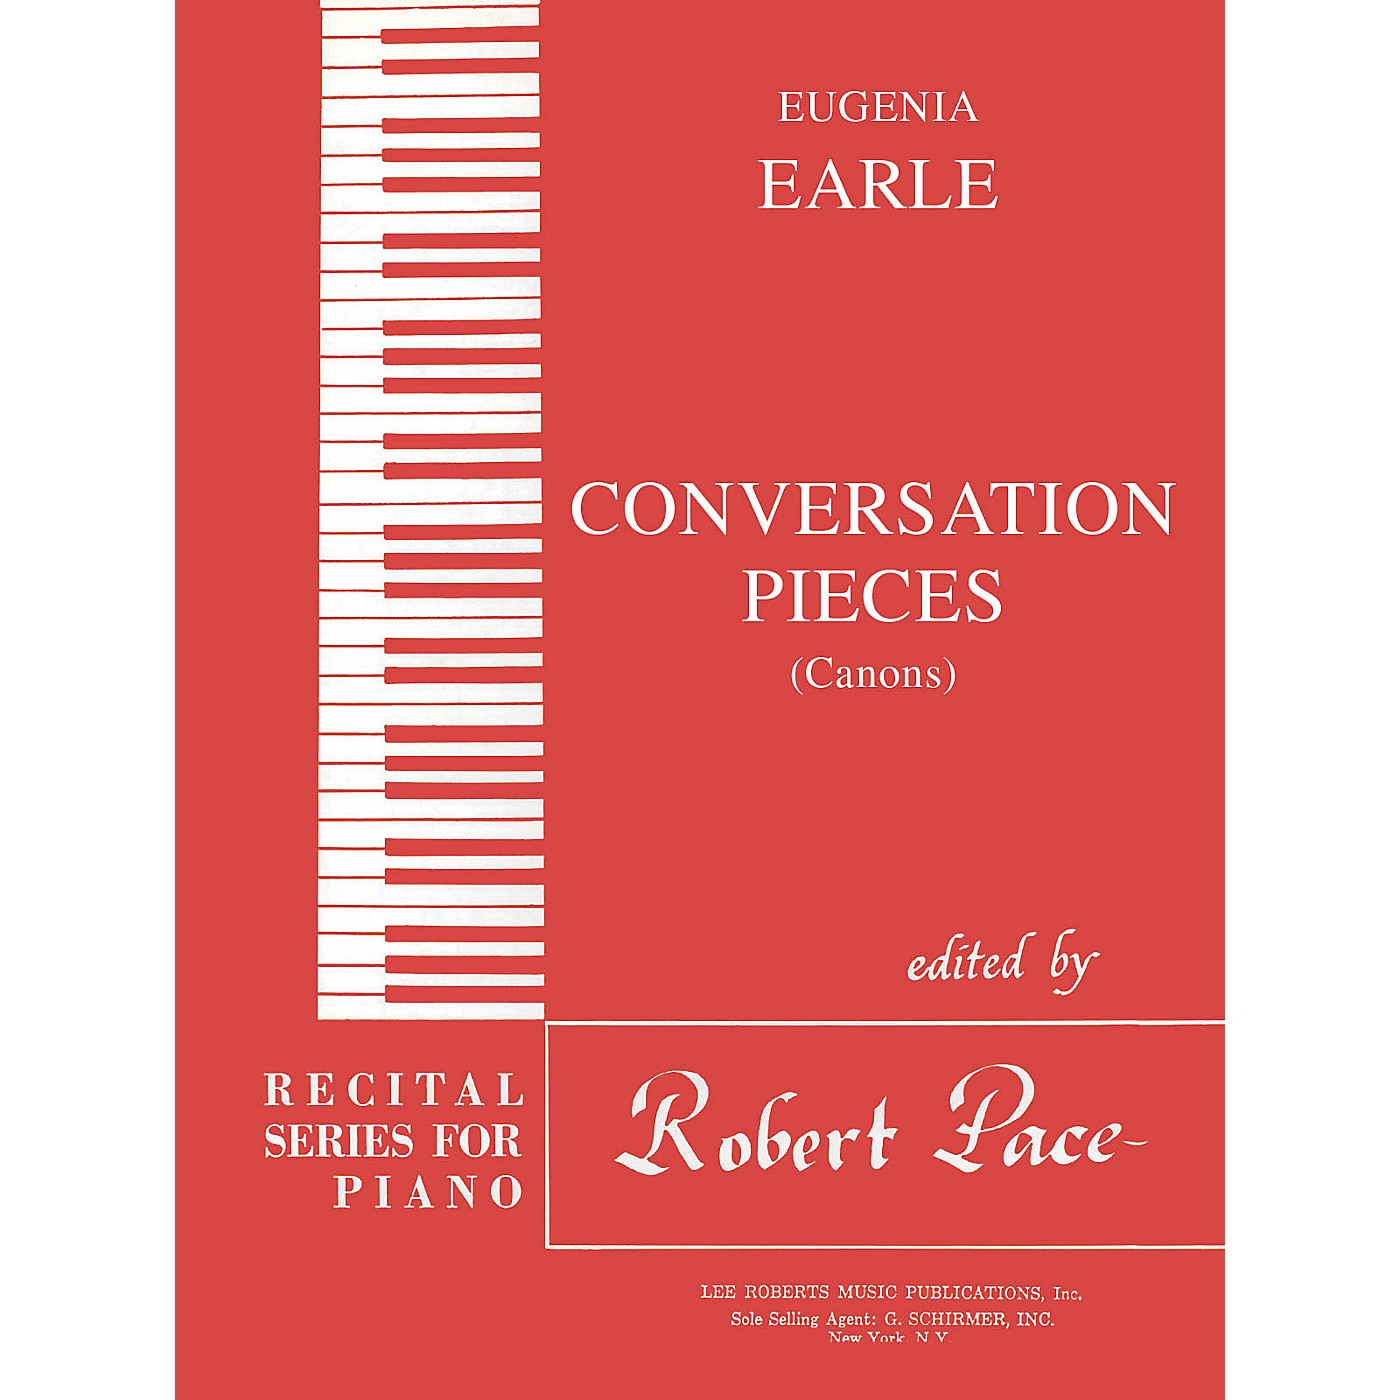 Lee Roberts Conversation Pieces - A Set of Canons Pace Piano Education Series Composed by Eugenia Earle thumbnail